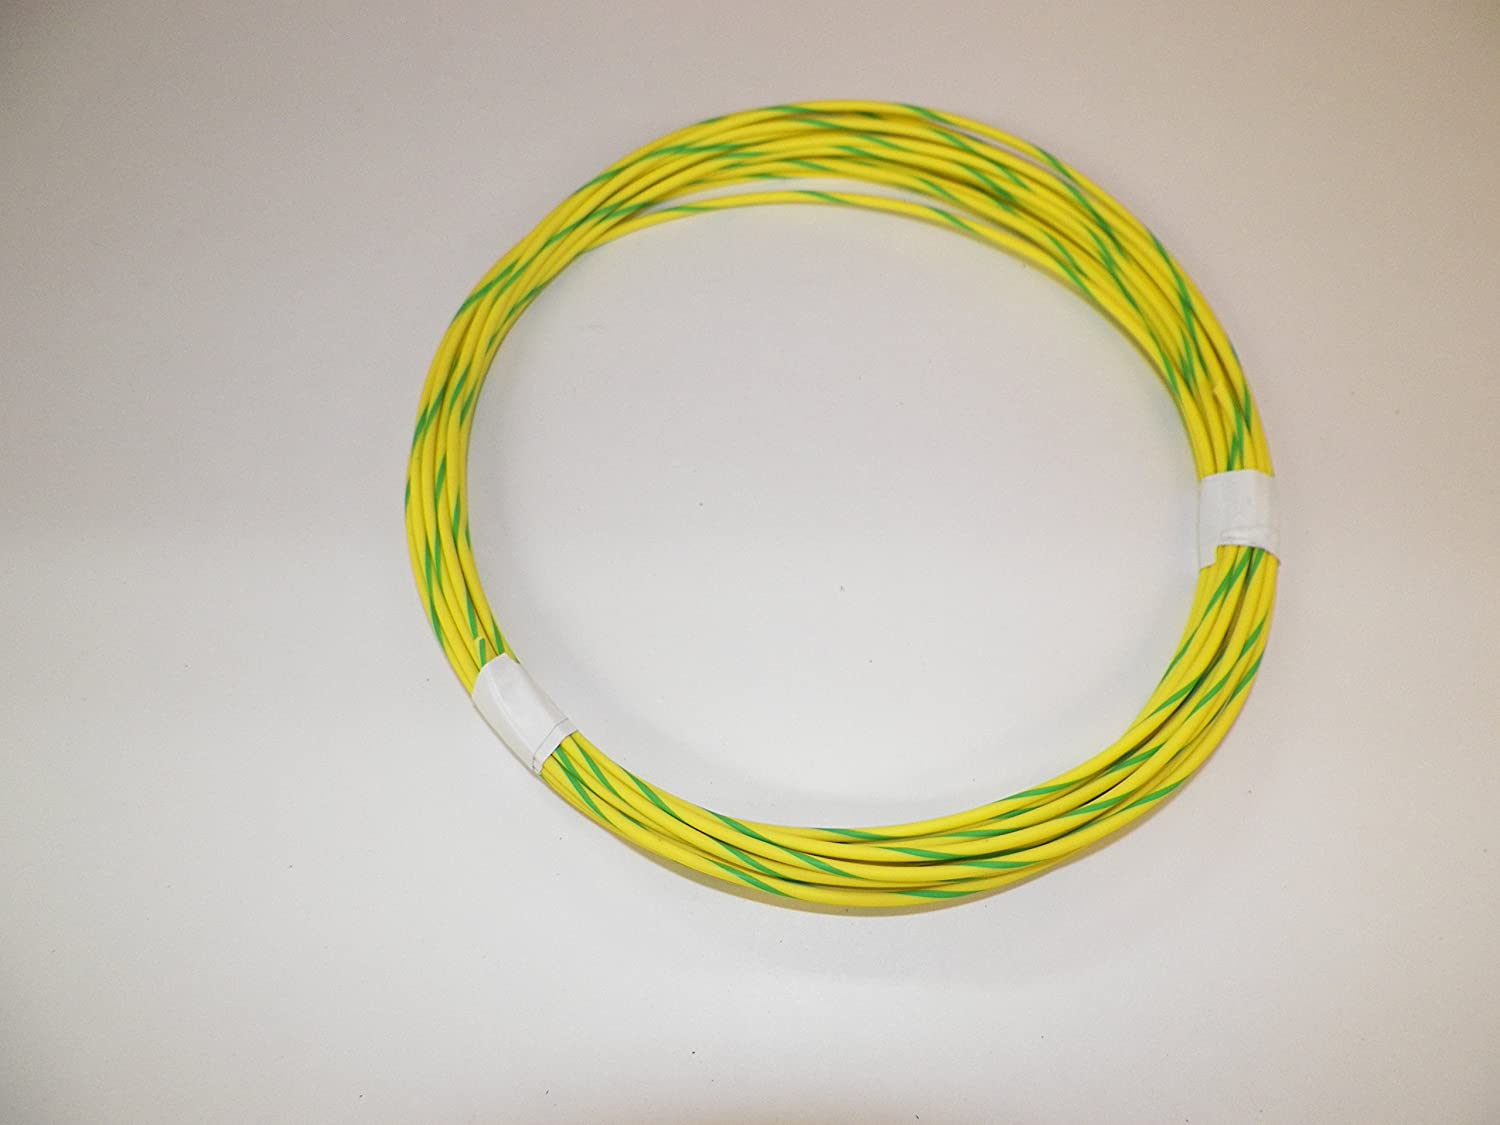 Awesome Striped Automotive Wire Gift - Everything You Need to Know ...